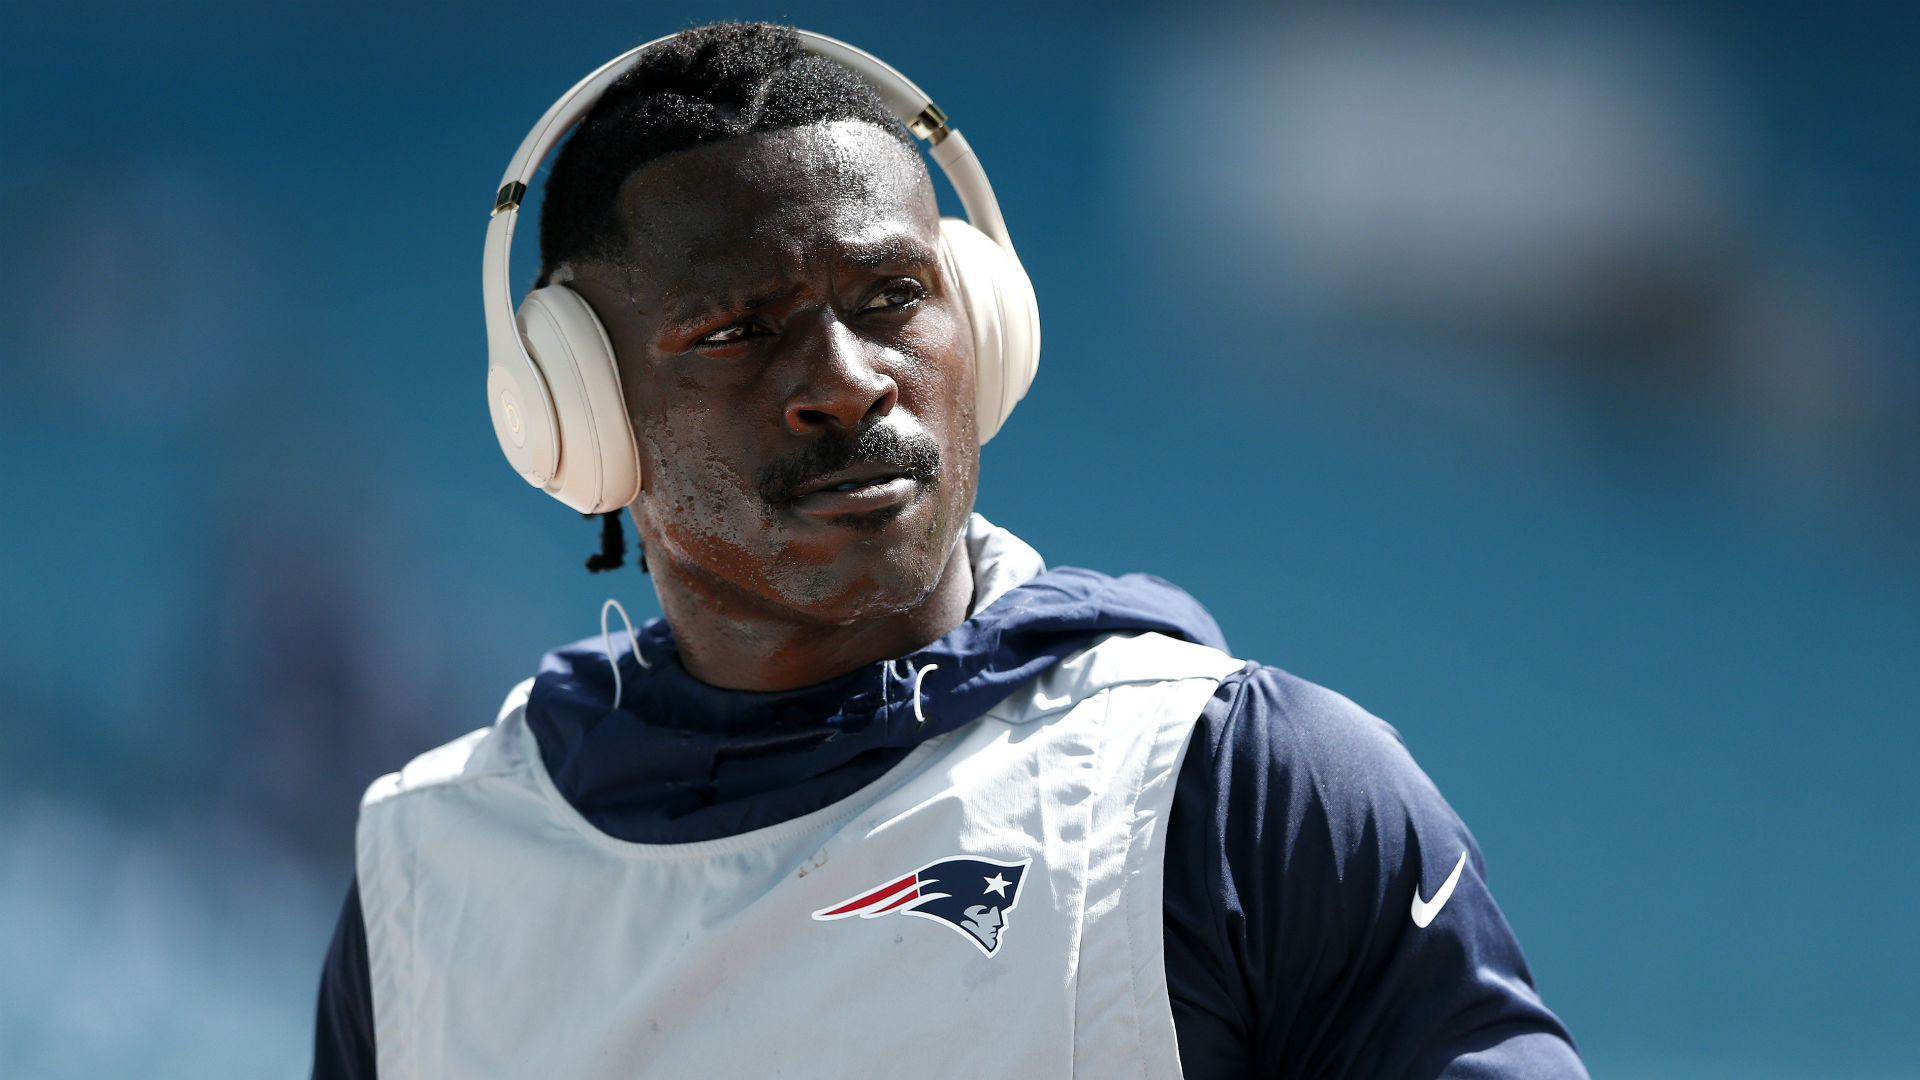 Antonio Brown addresses media for the first time with Patriots: 'I'm just here to focus on ball'